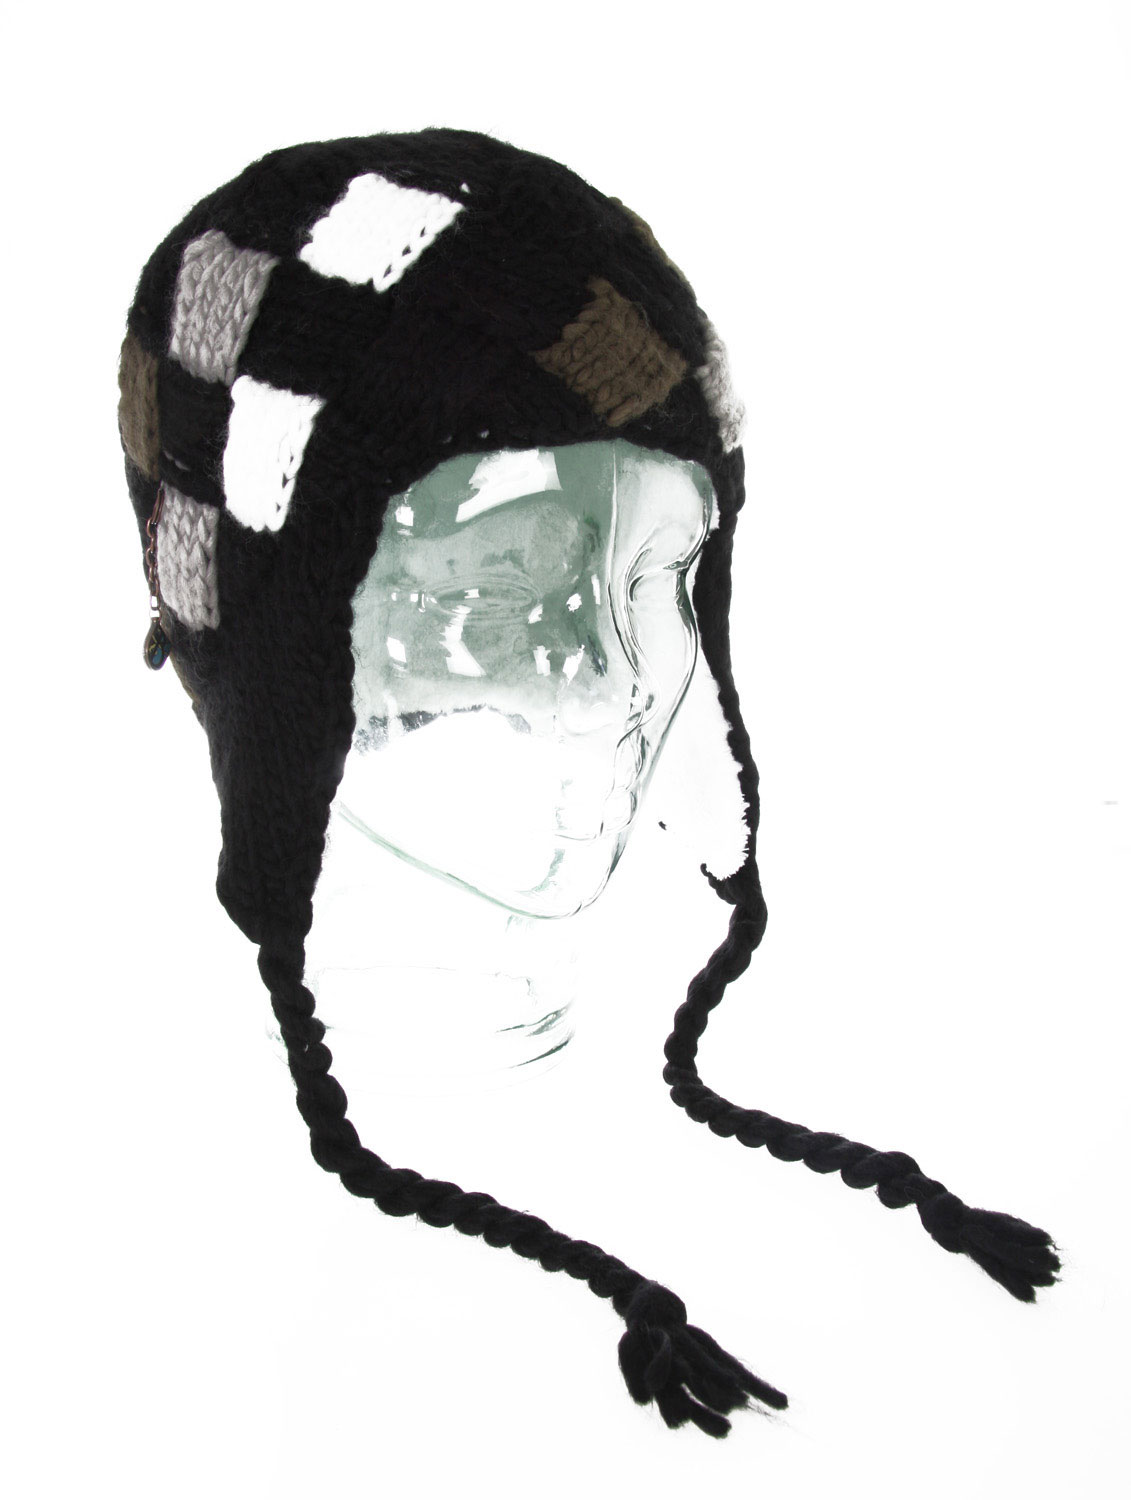 Snowboard The Burton Didnt Hear It From Me Beanie. 100% Acrylic - Microluxe Sherpa Fleece Lining. - $18.16